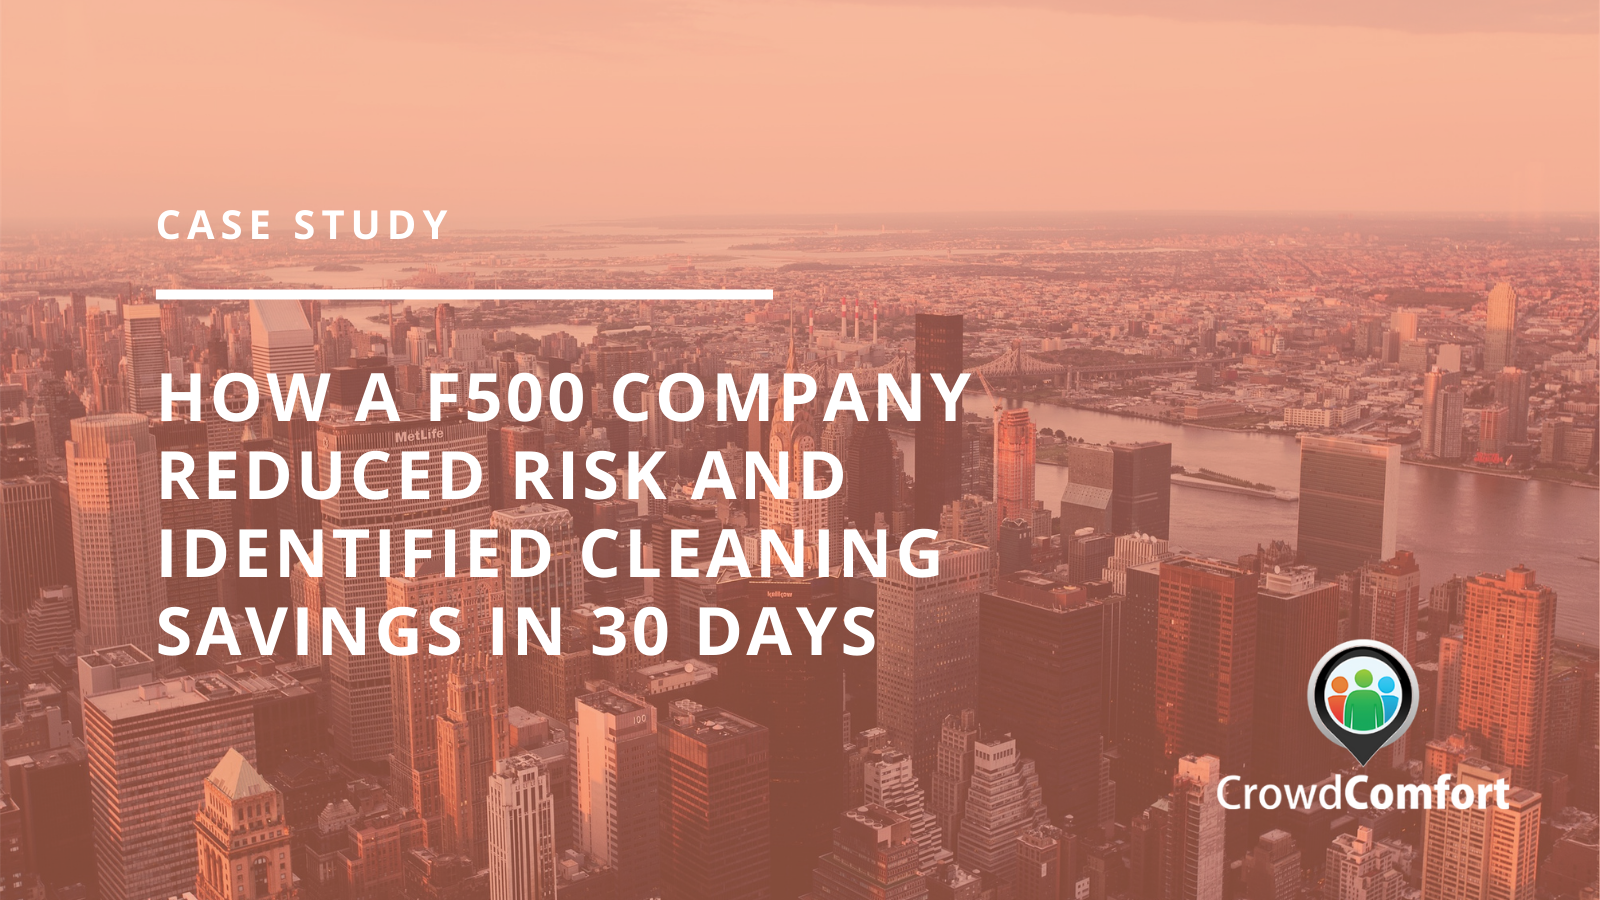 F500 Company Reduced Risk and Identified Cleaning Savings in 30 Days